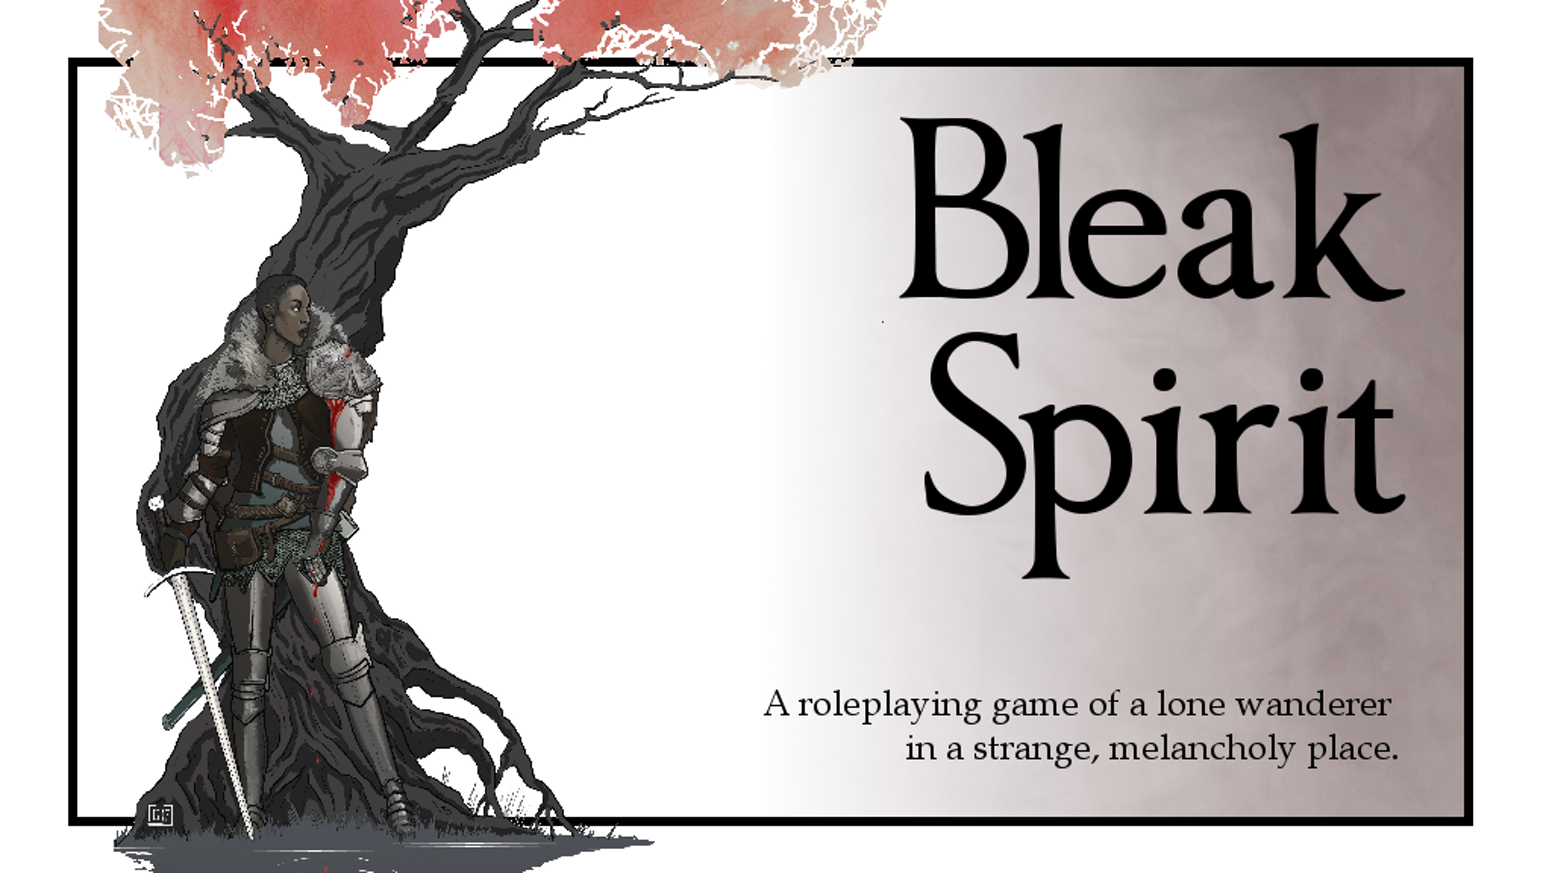 A roleplaying game about exploring dangerous, melancholy places, and discovering how they came to be that way.